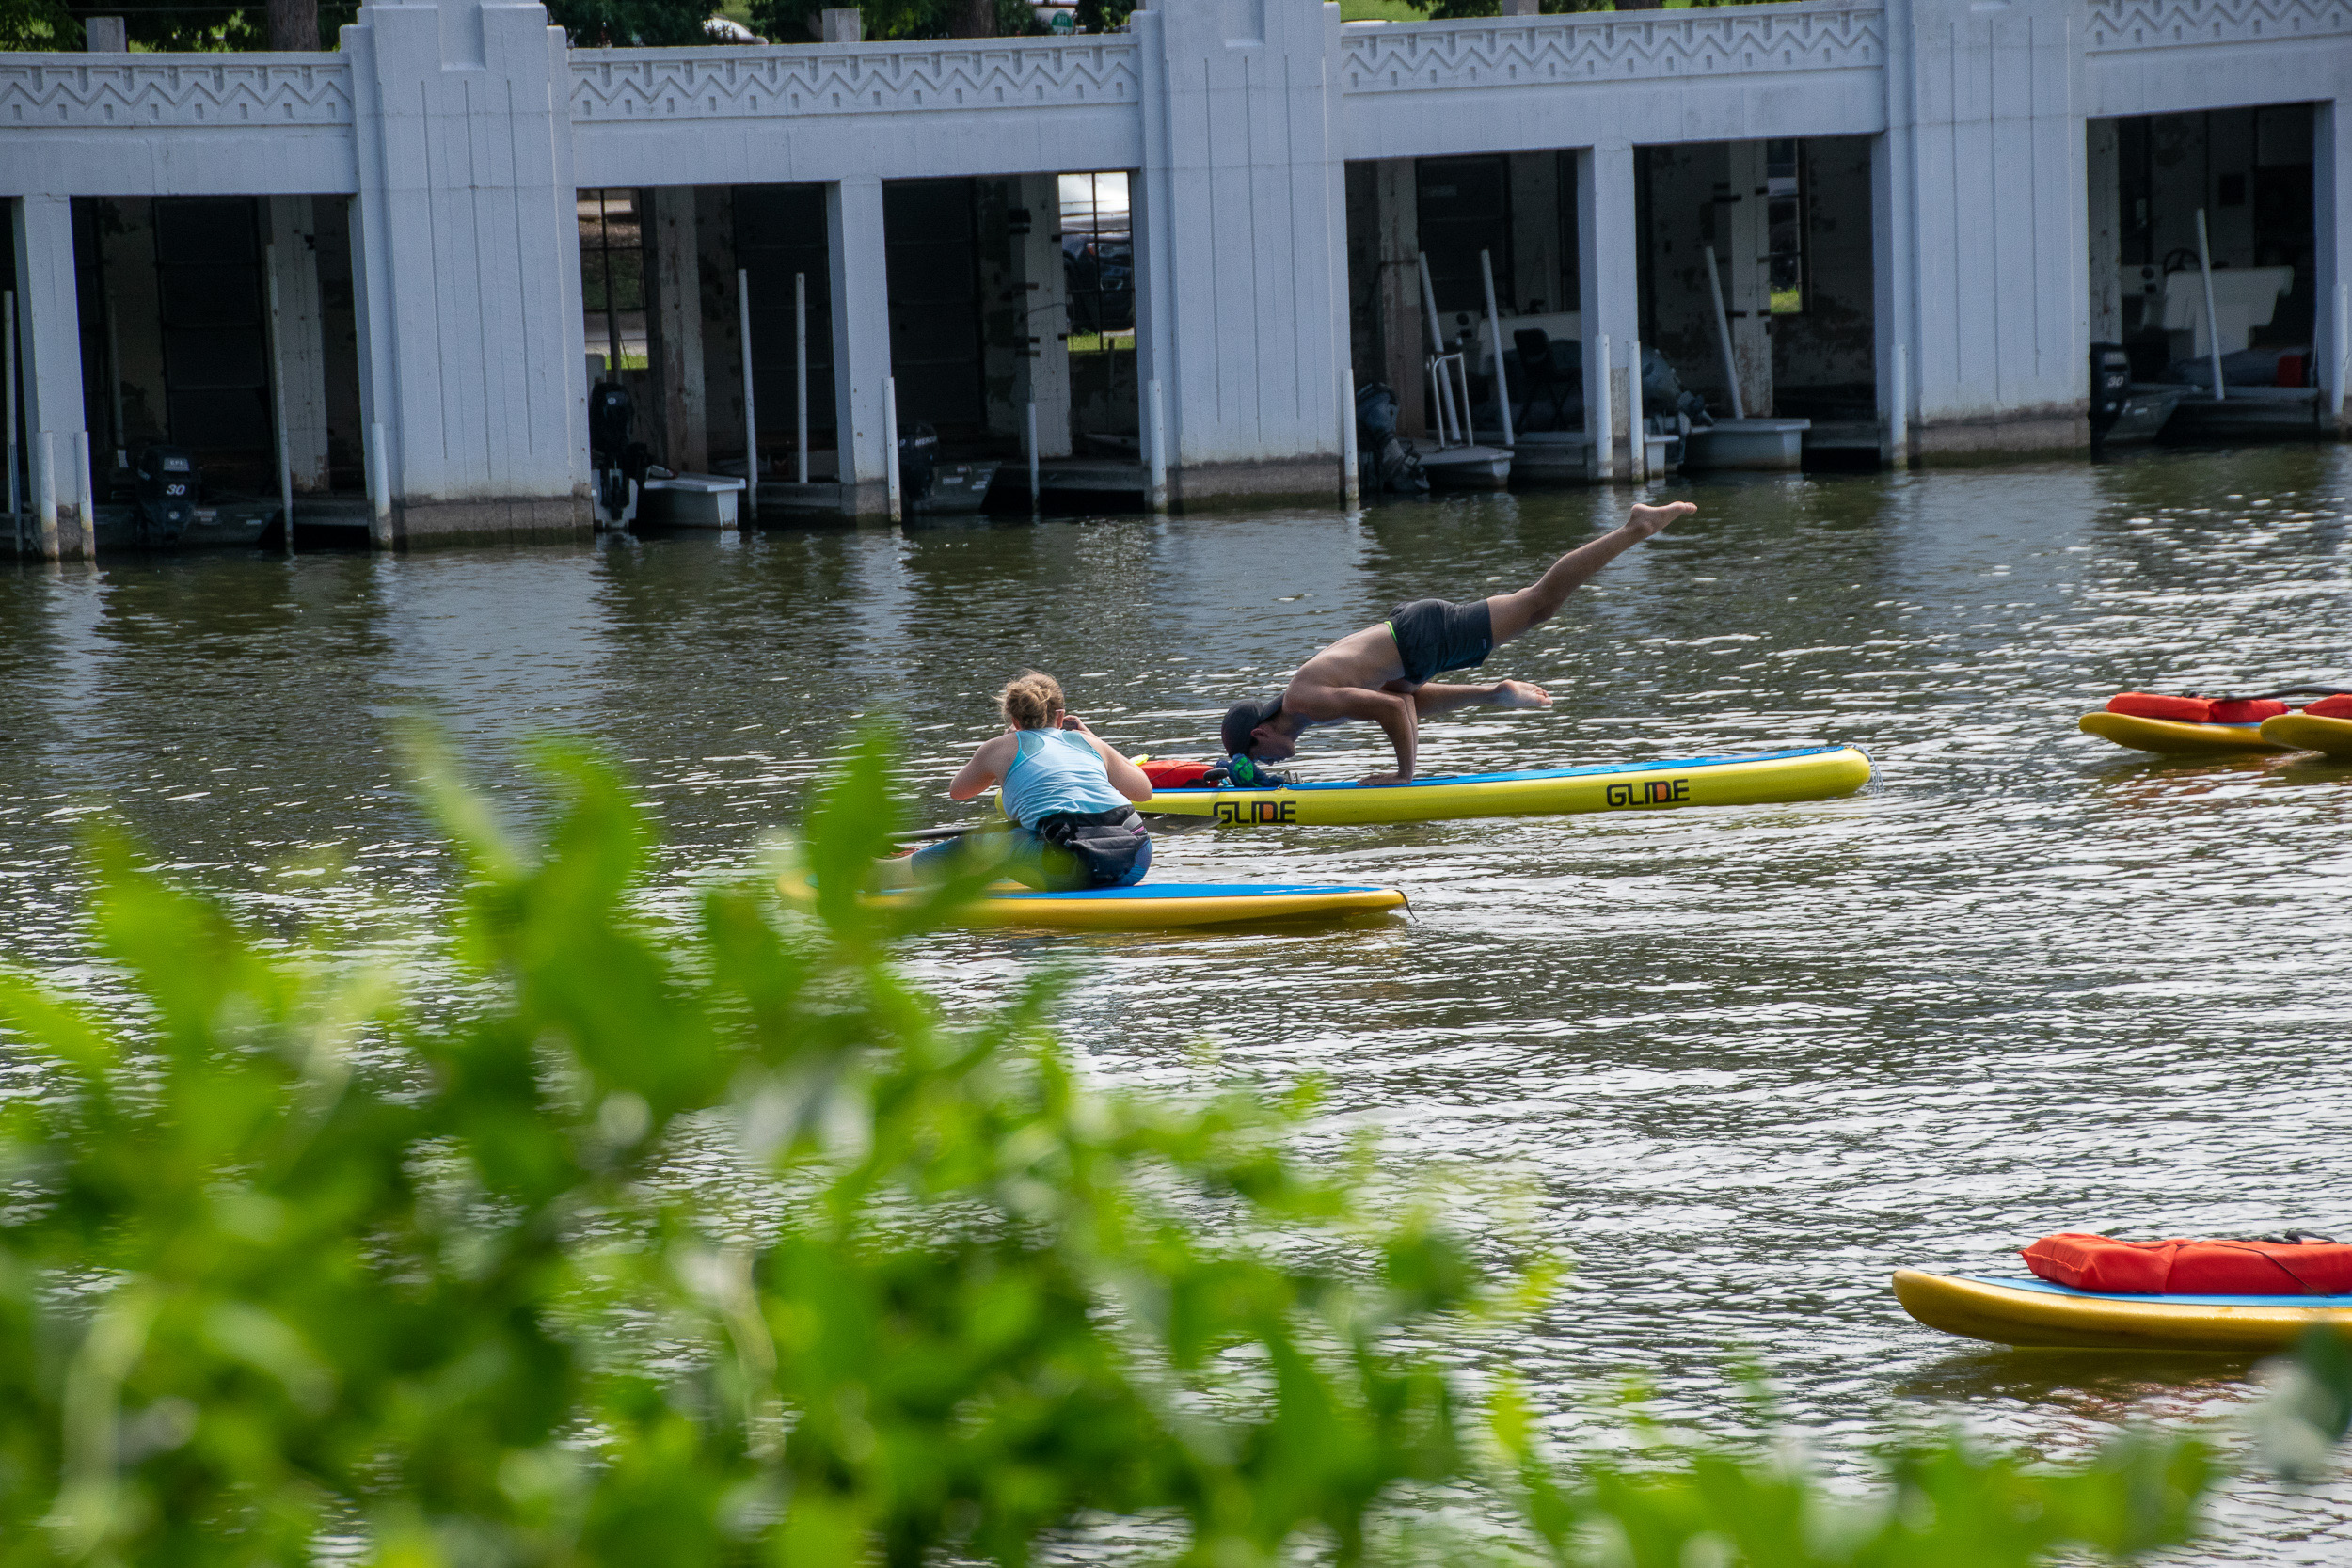 One yogi strikes a flying pigeon pose on his paddleboard as Amanda Quintanilla, Just Be Well Yoga founder, photographs from her board.